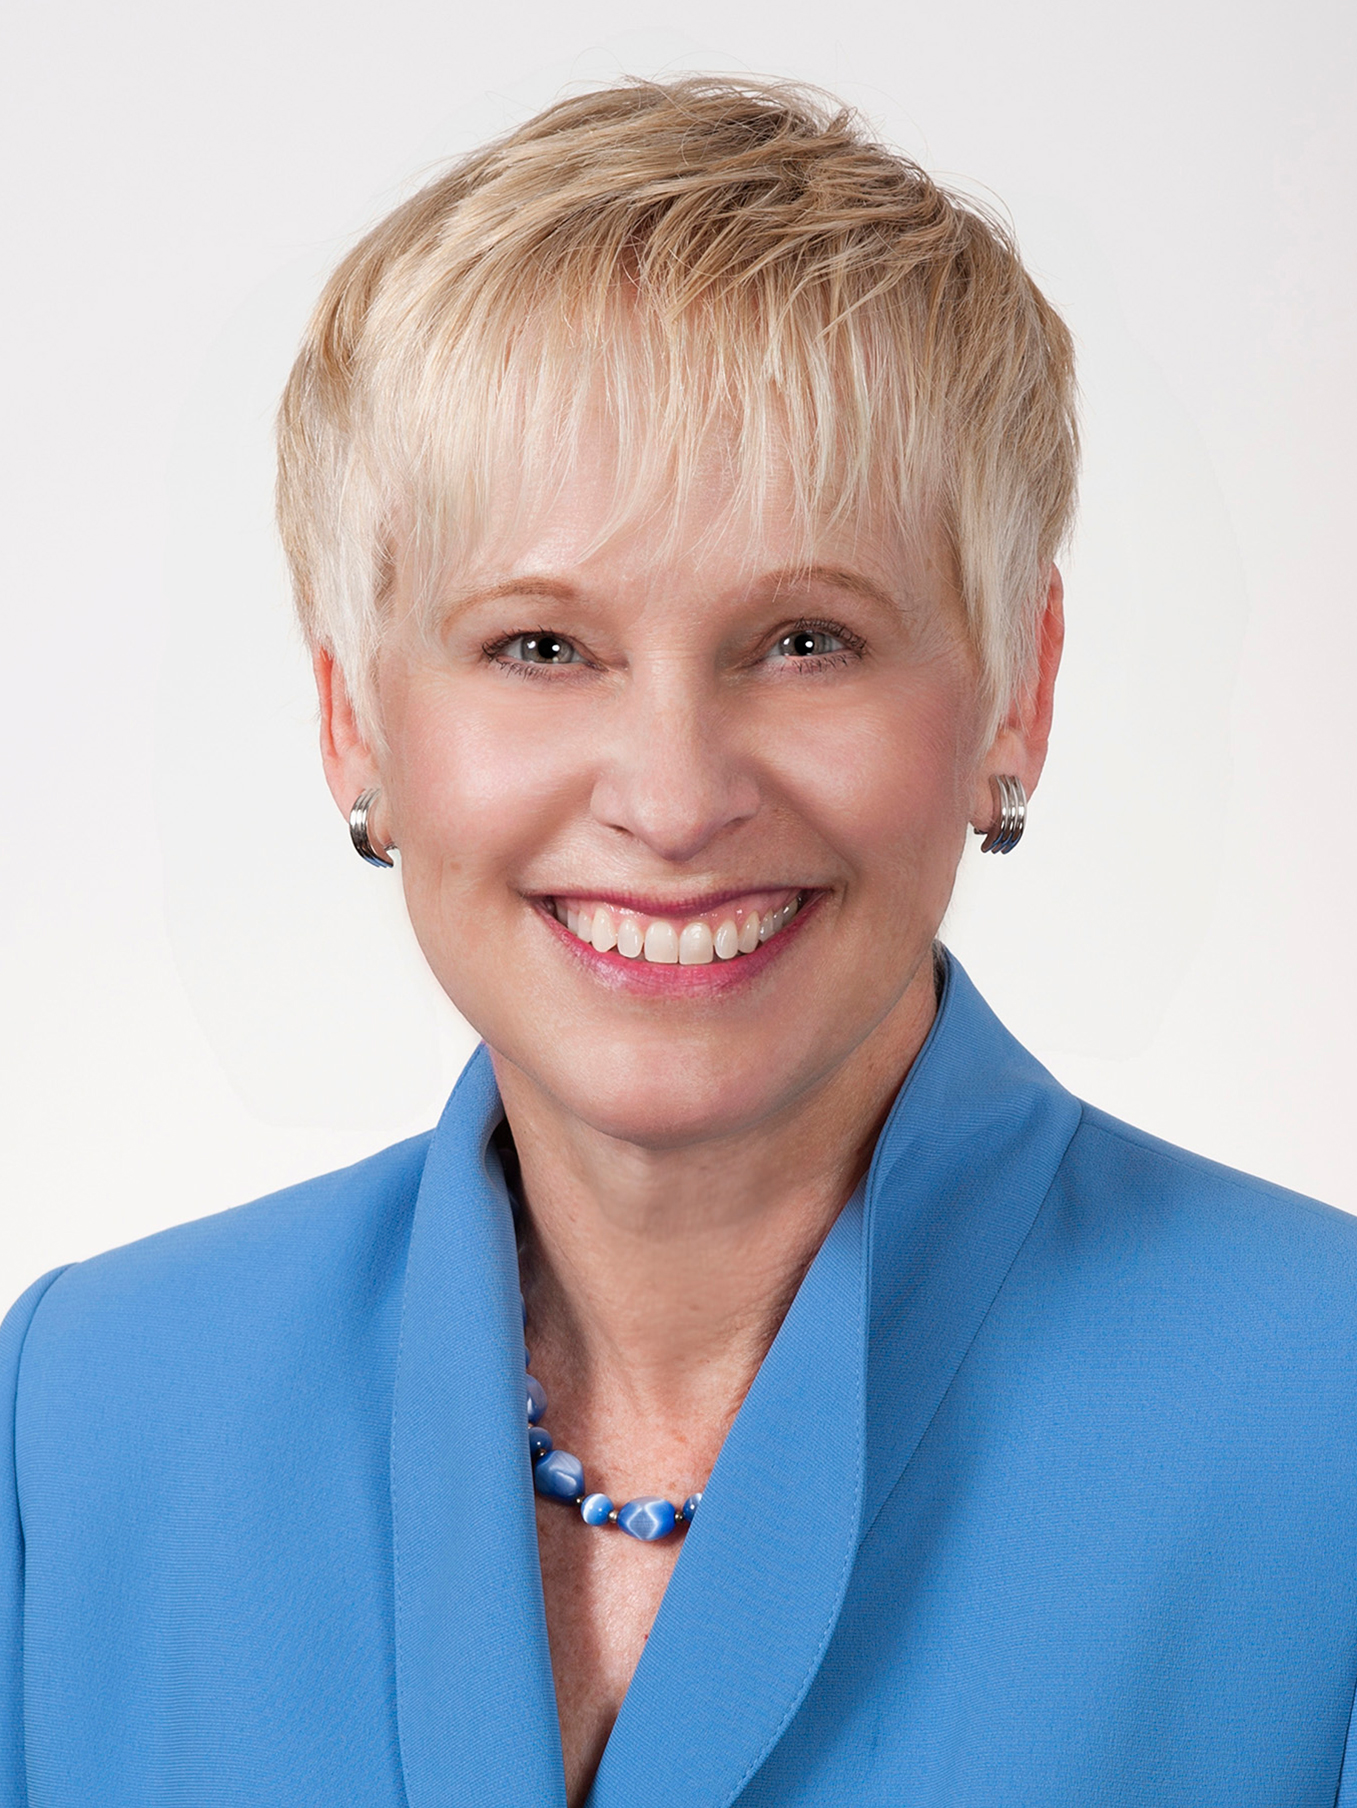 Linda S. Brown, Partner, Co-founder, Director of Operations, and CCO of Day Hagan Asset Management in Sarasota, FL.